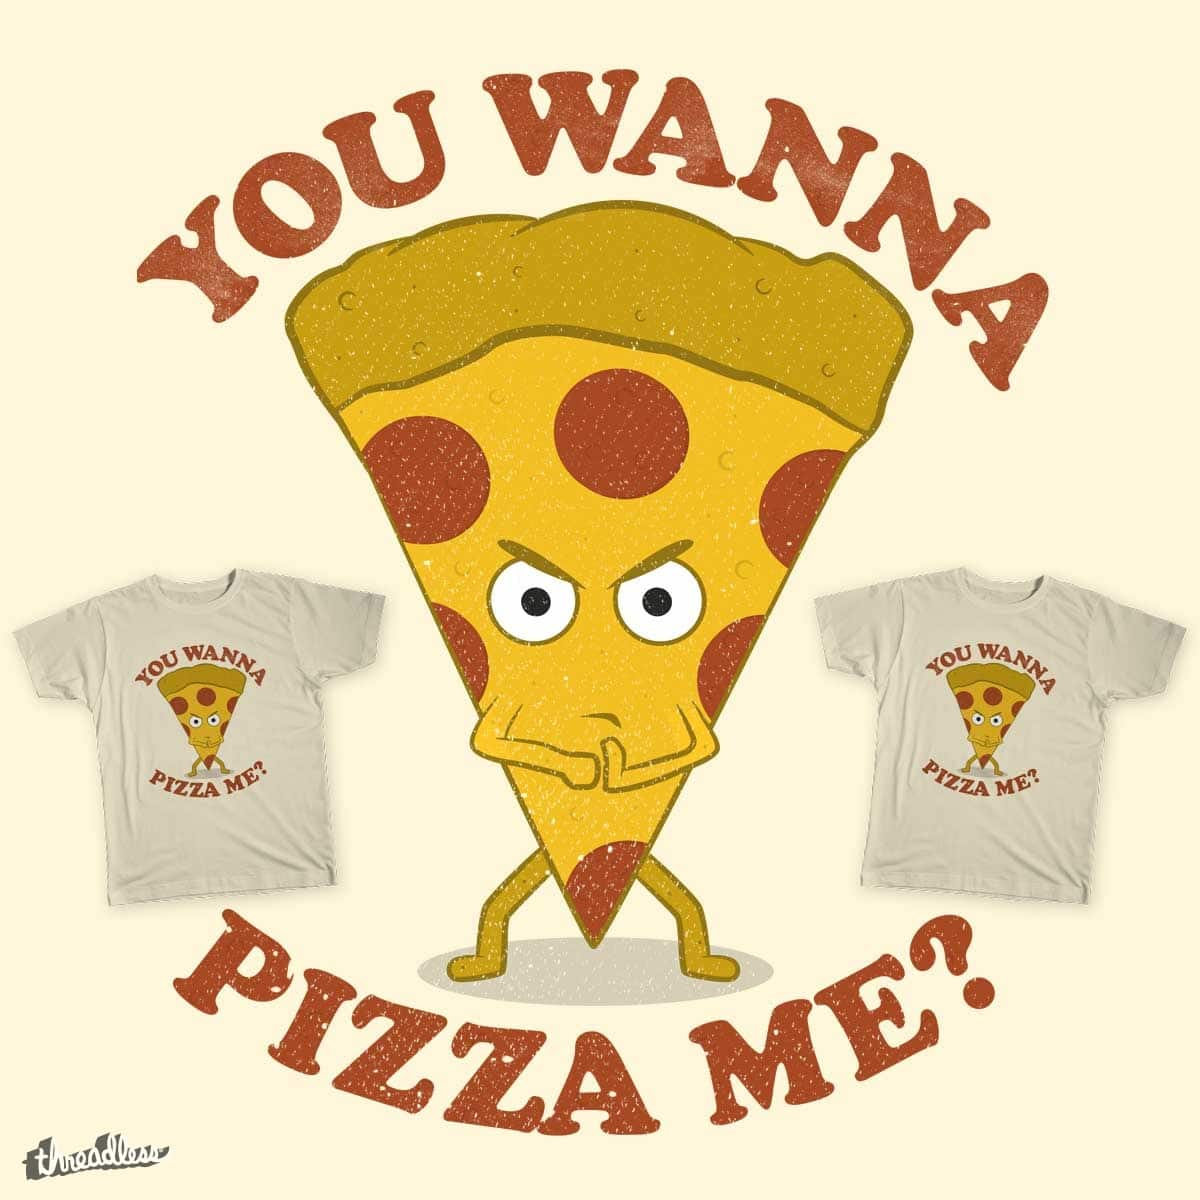 You Wanna Pizza Me by renduh on Threadless